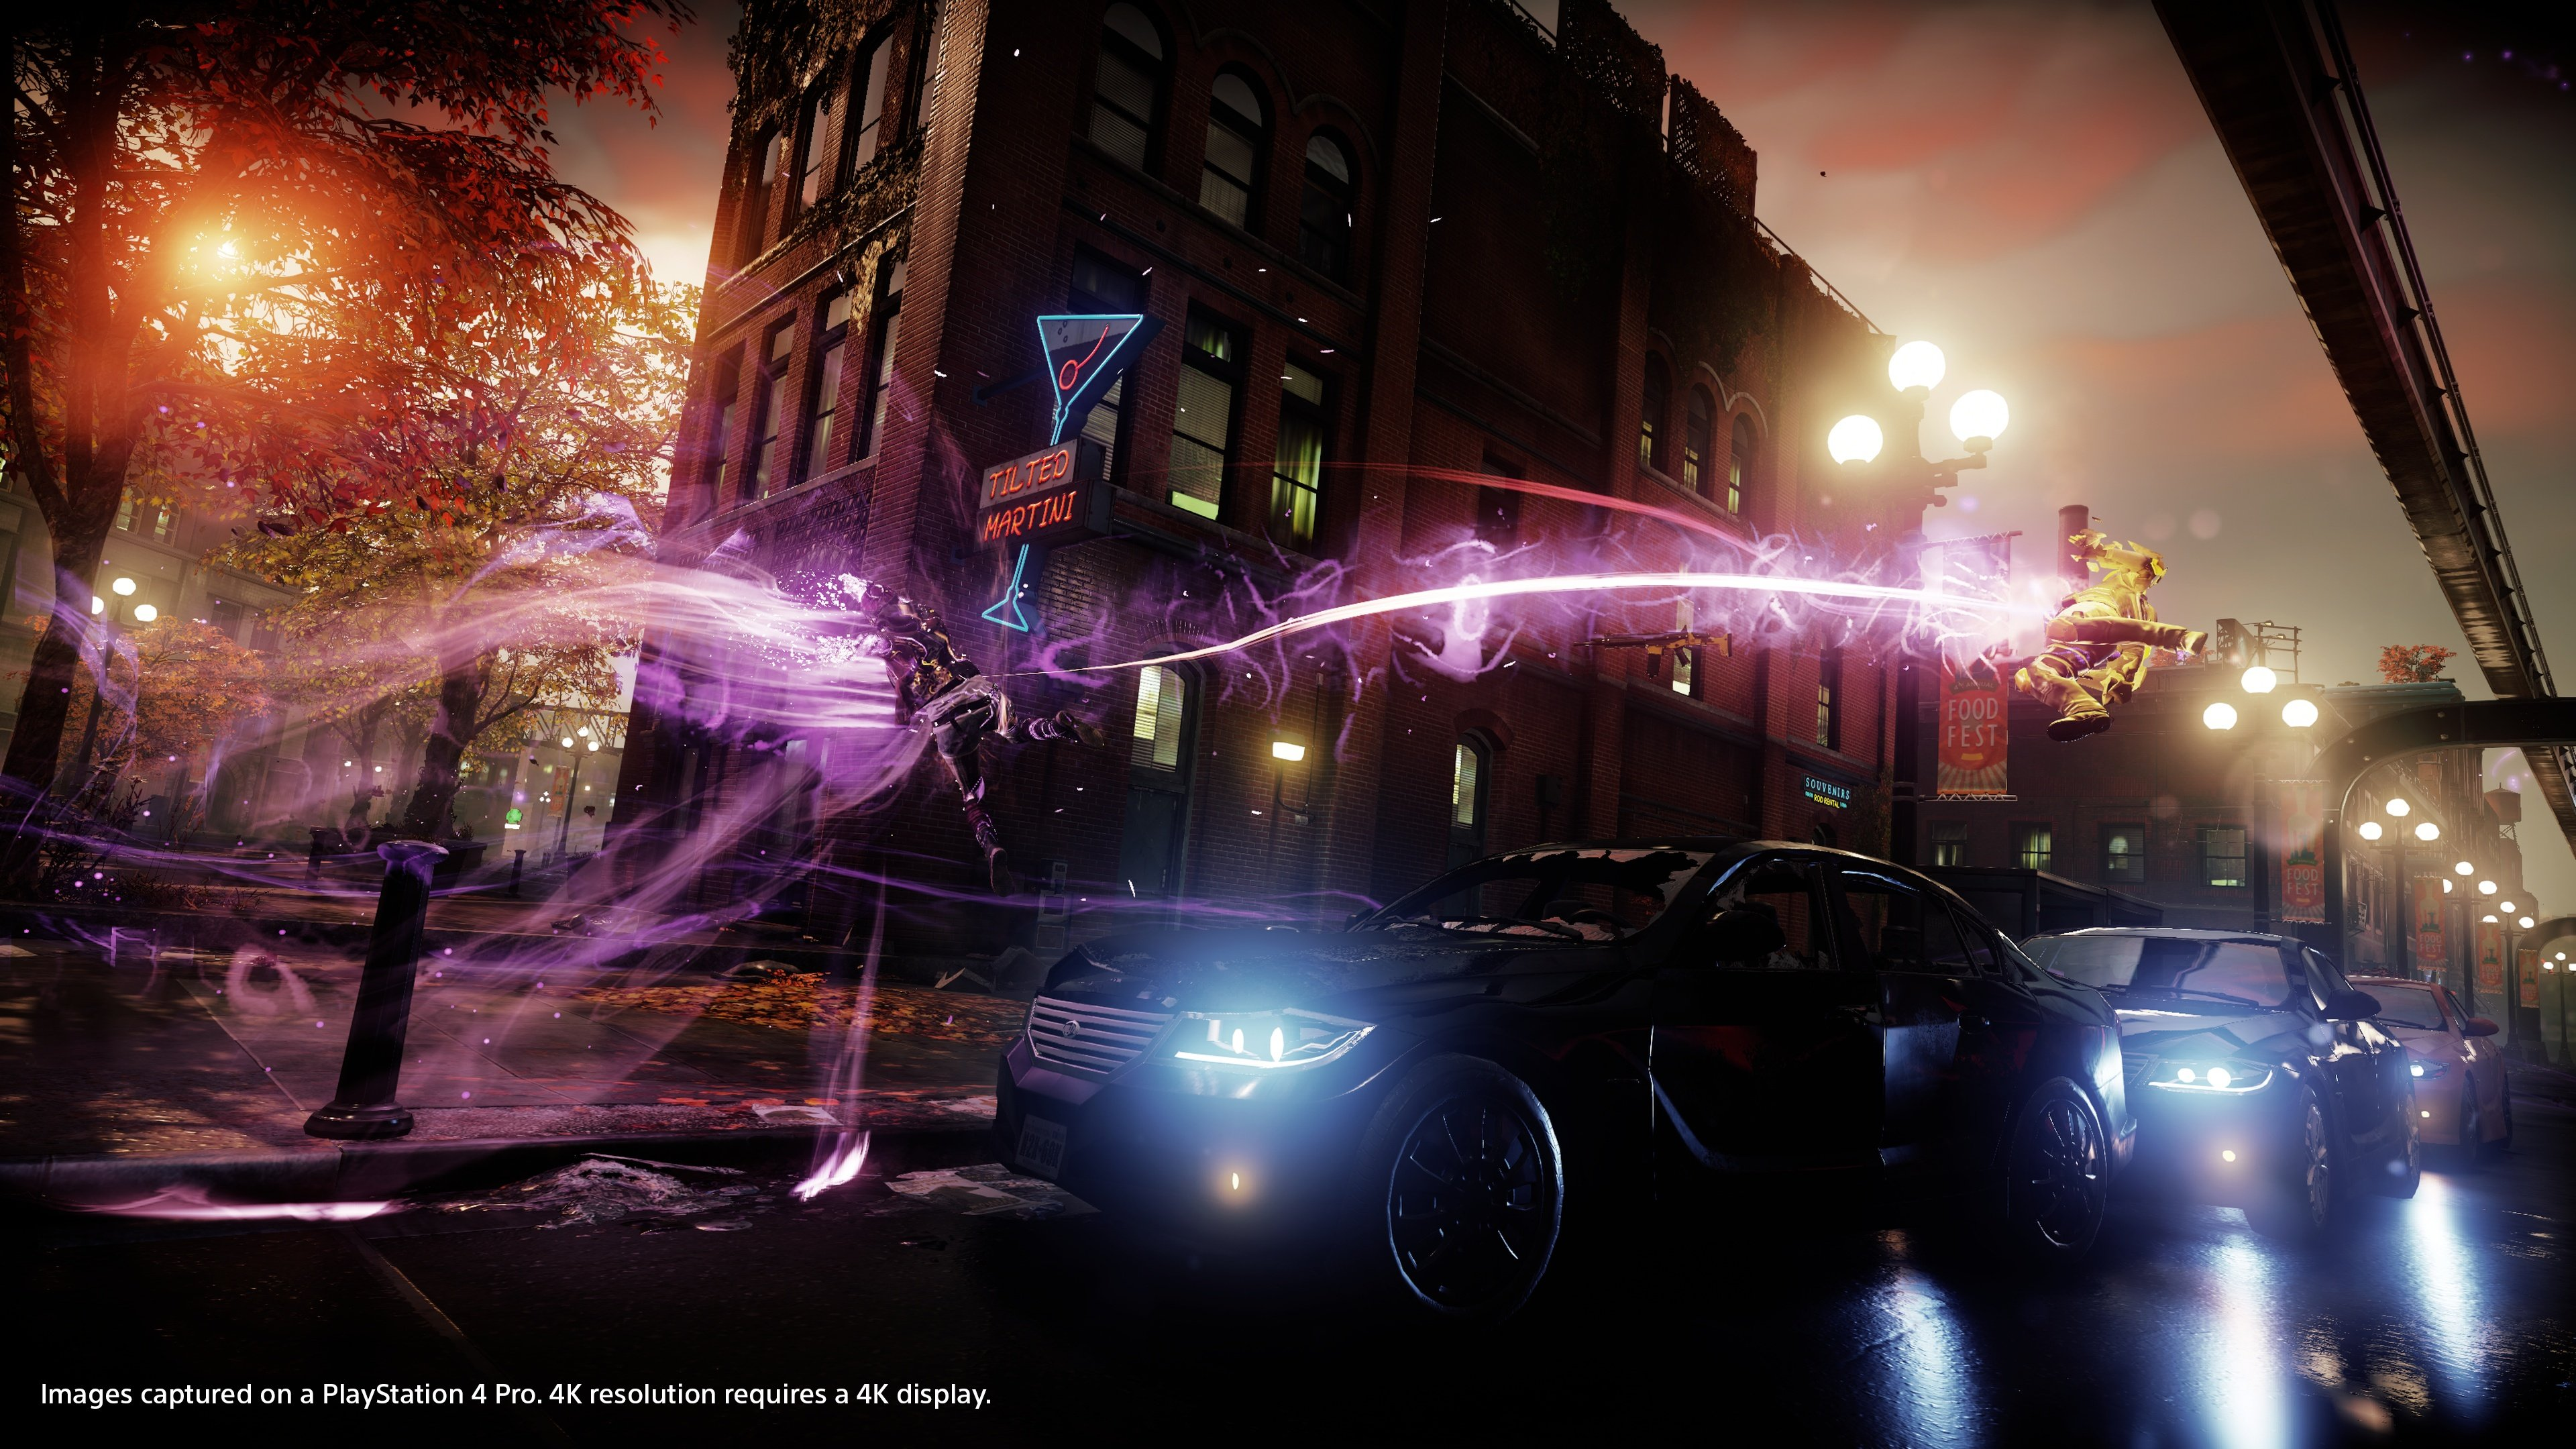 infamous_second_son__last_light-3558215.